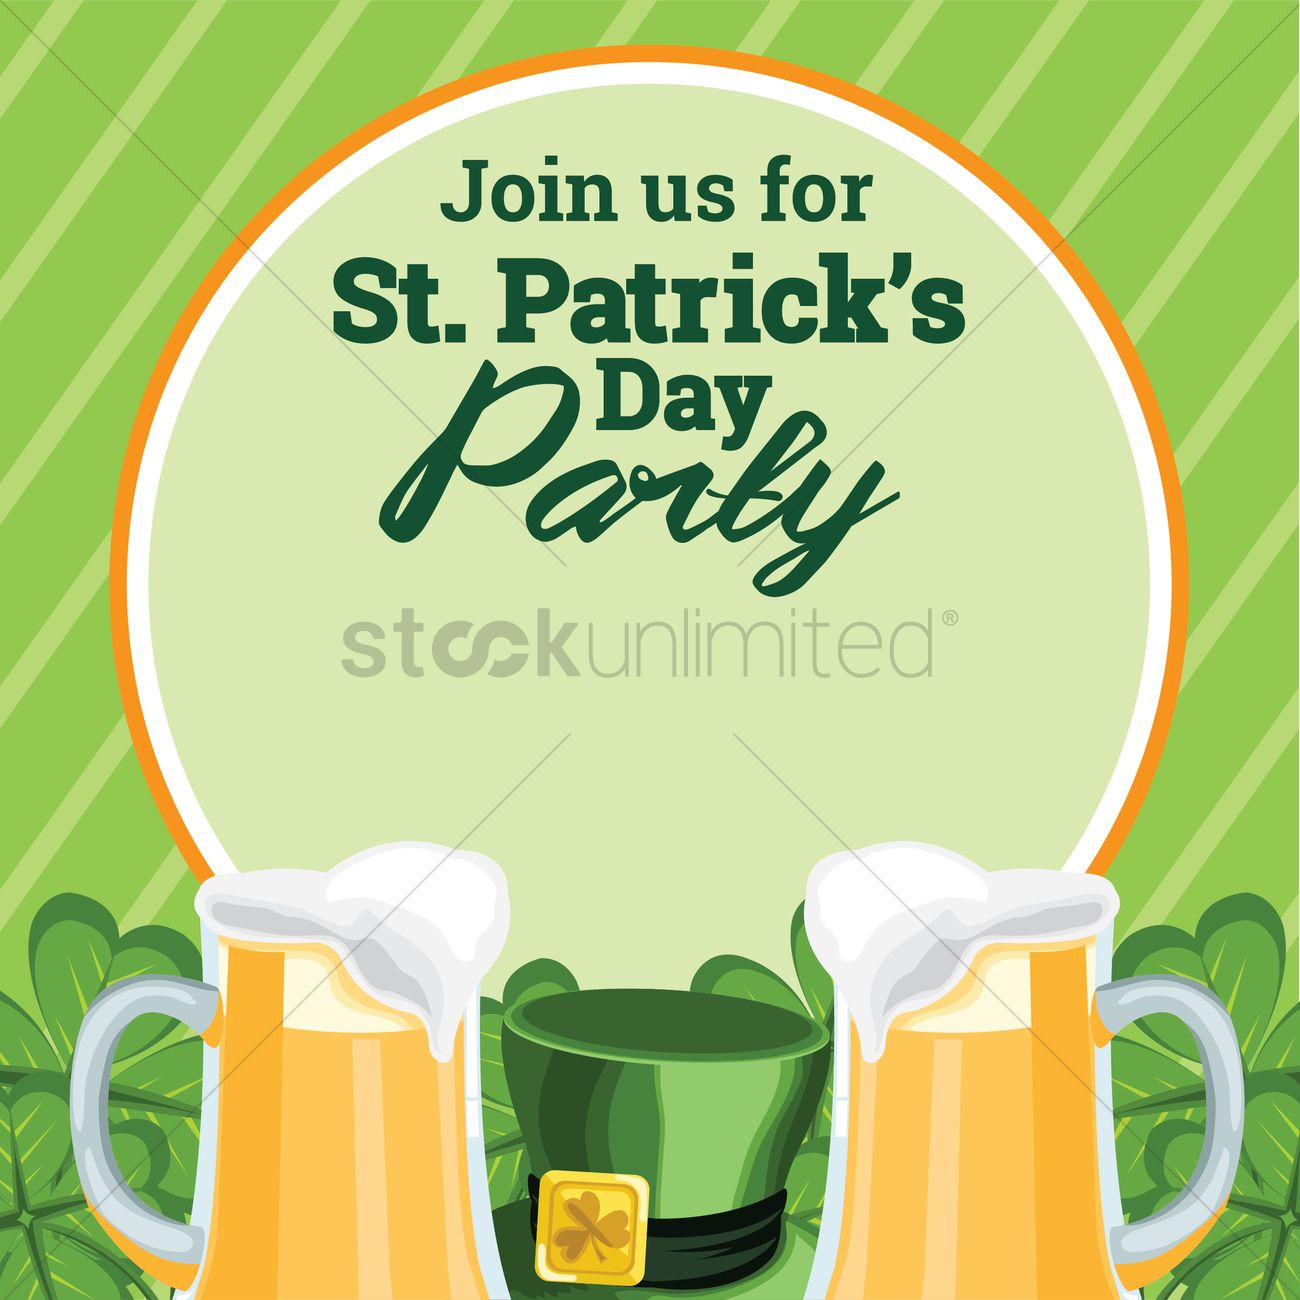 St patricks day party invitation Vector Image - 1991422 | StockUnlimited